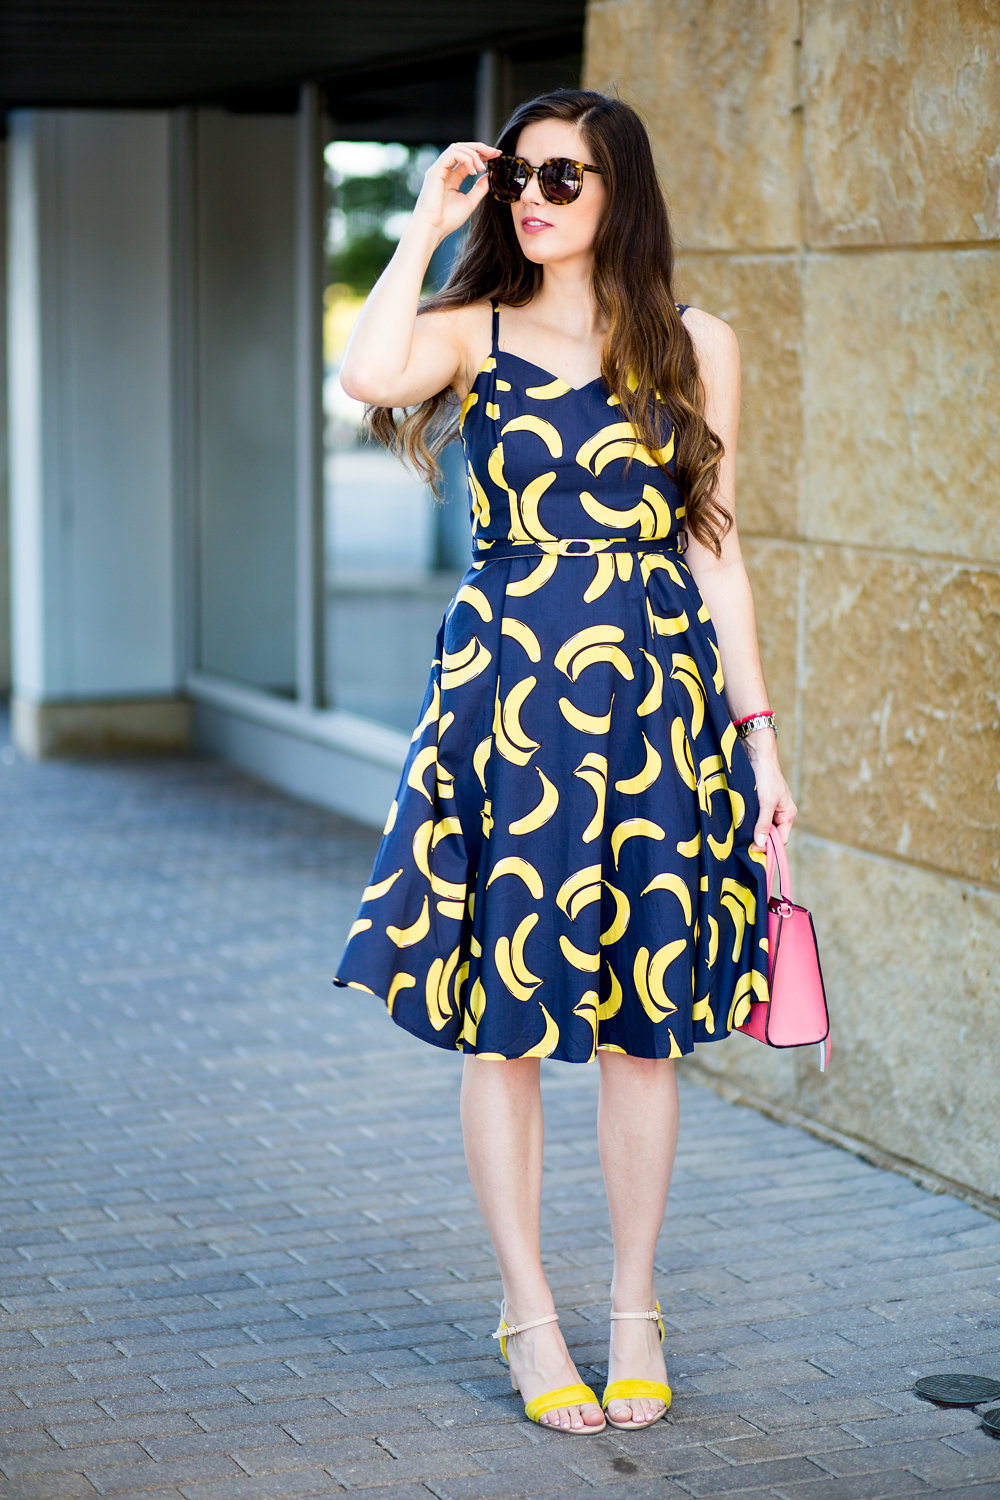 446e2240e7deaf Banana dress from Modcloth with yellow heels